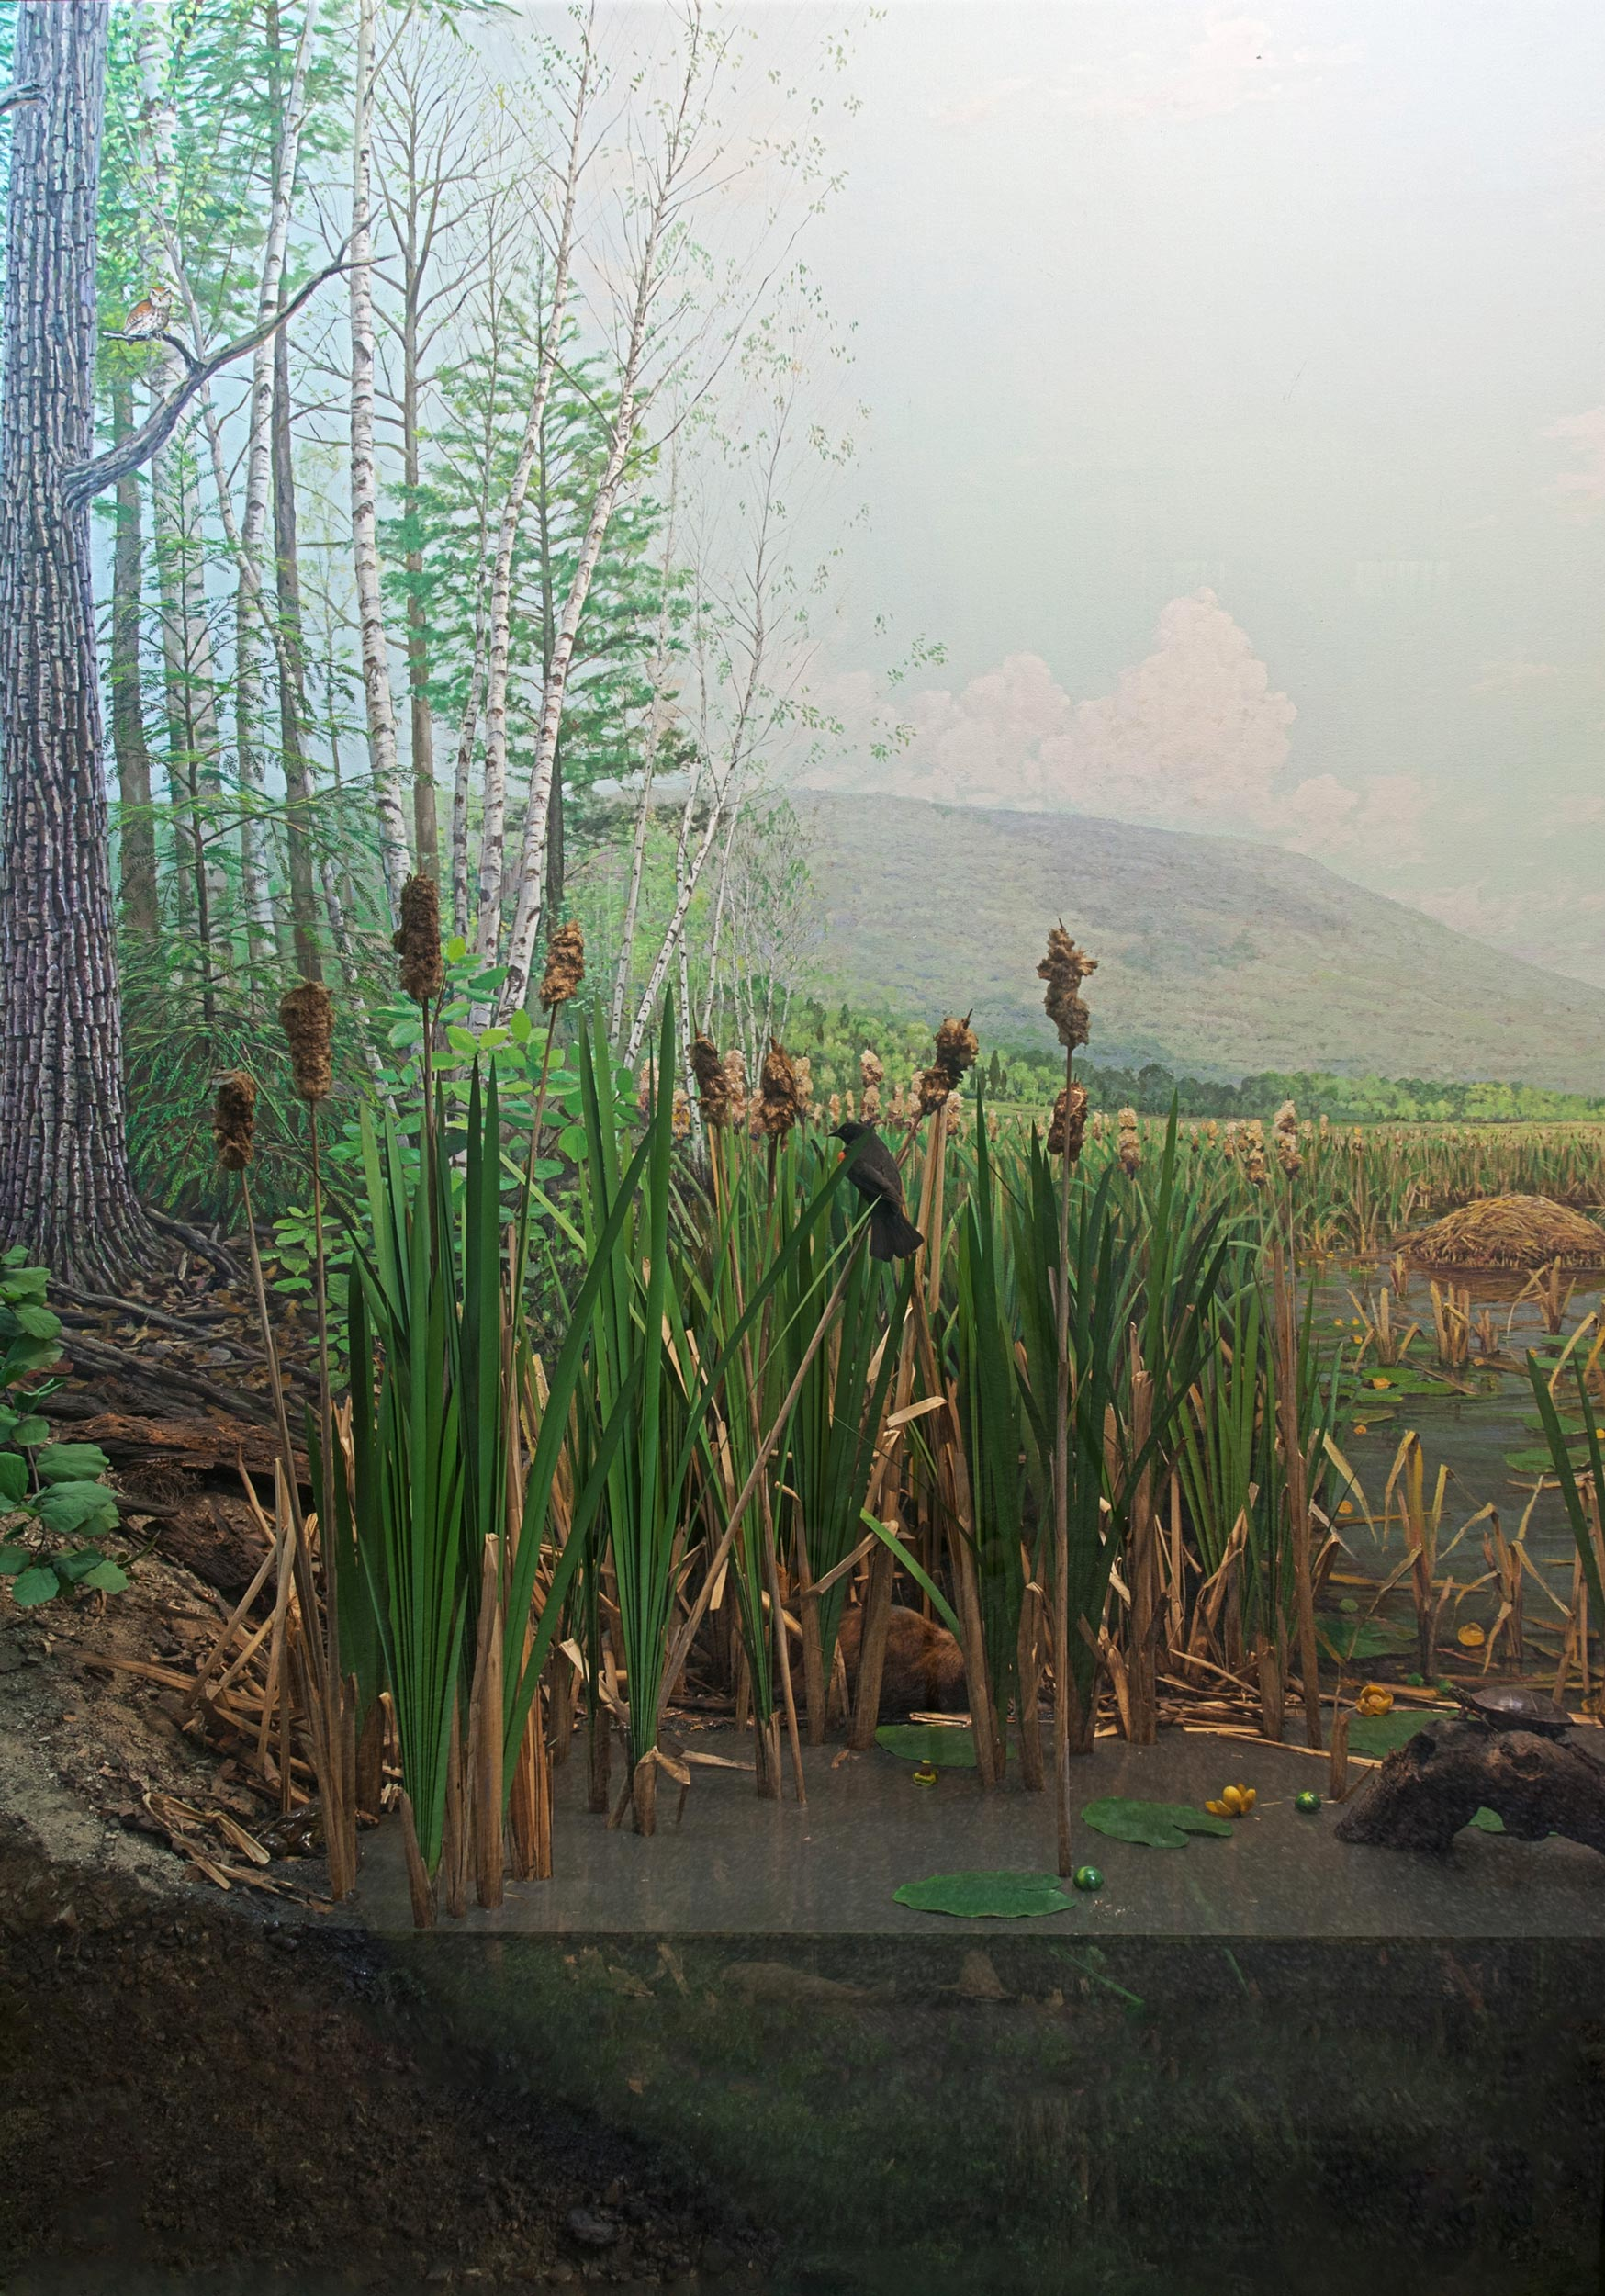 Section of a diorama showing a cross section of a lake